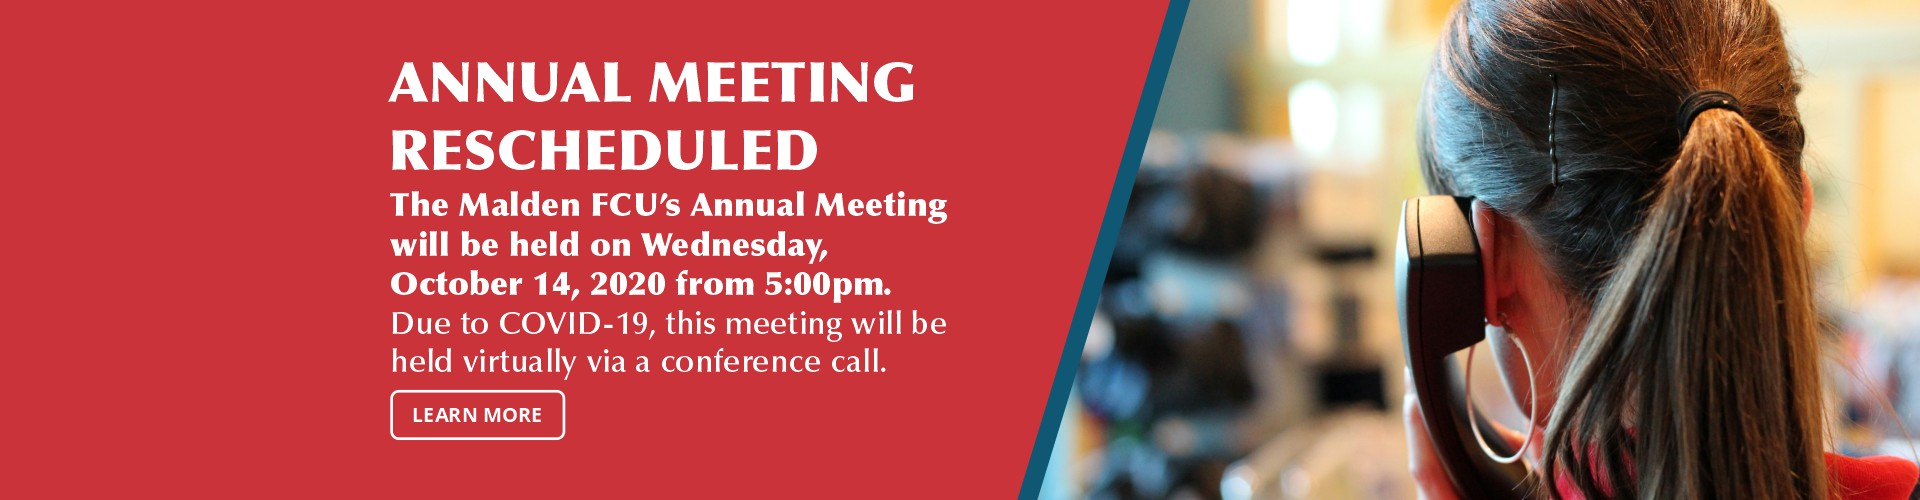 Annual Meeting Rescheduled